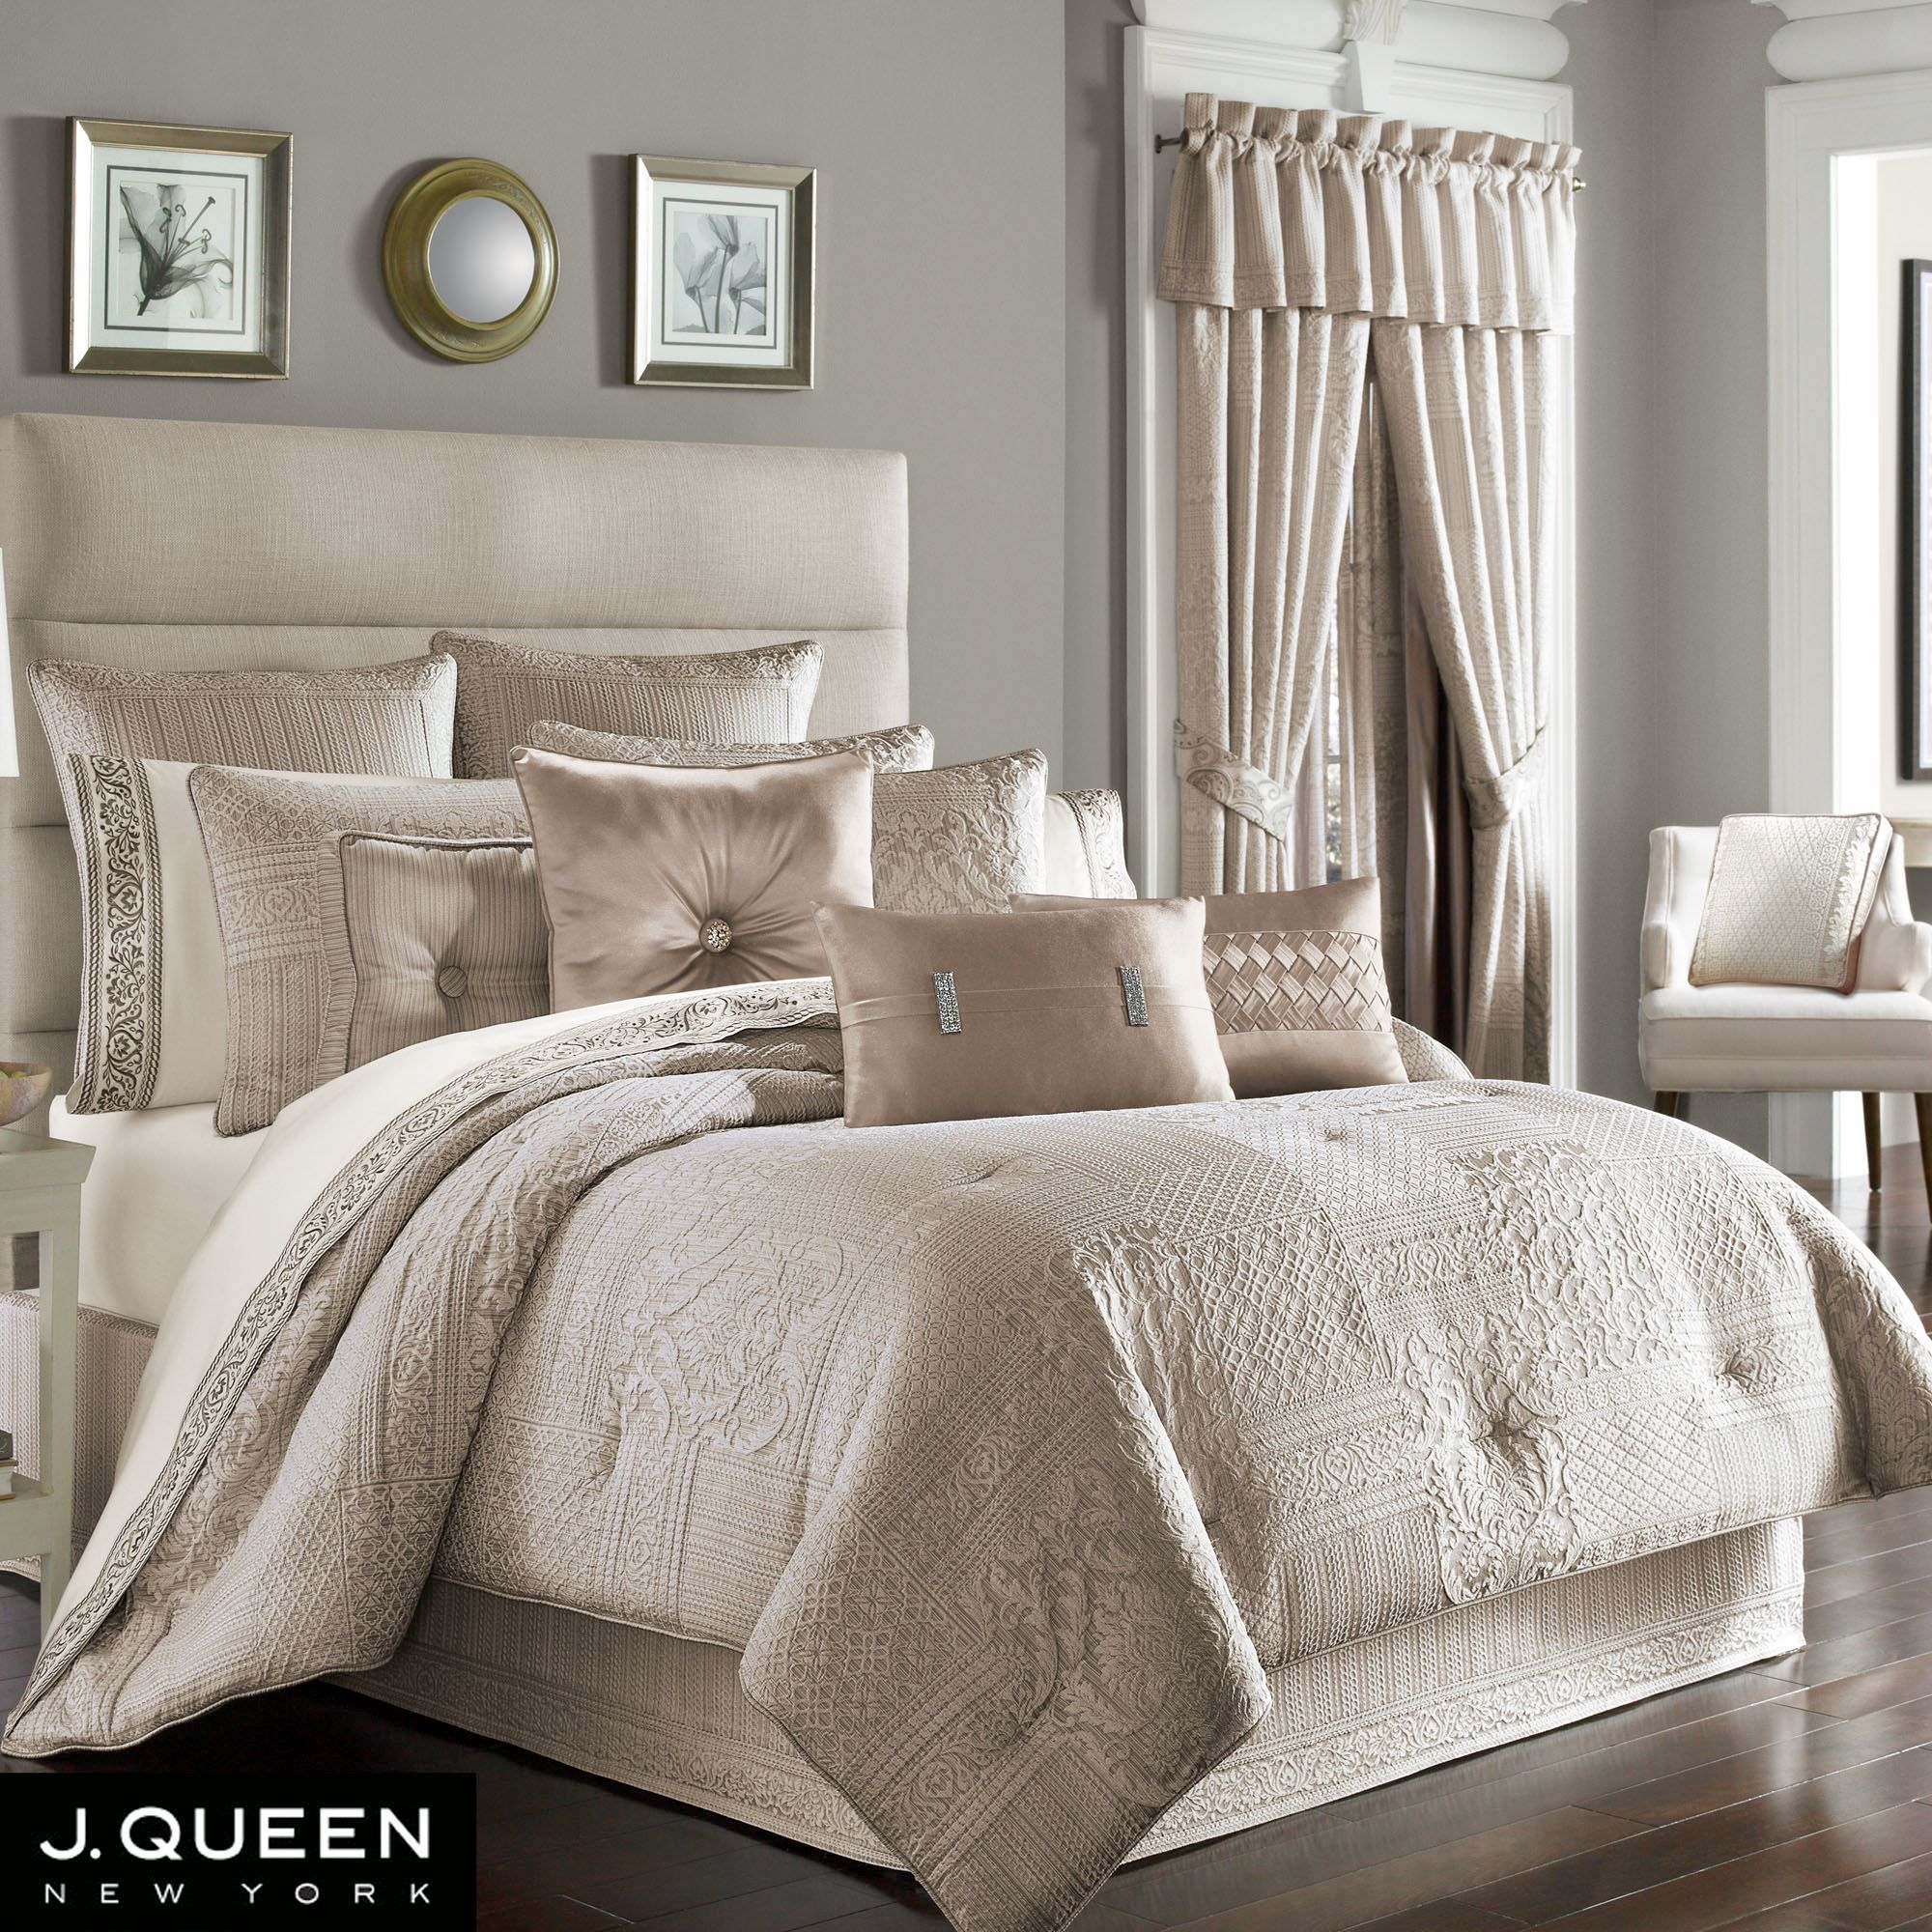 medinaburtonryland piece medina mp park beige comforter set black madison jacquard ebay side queen itm